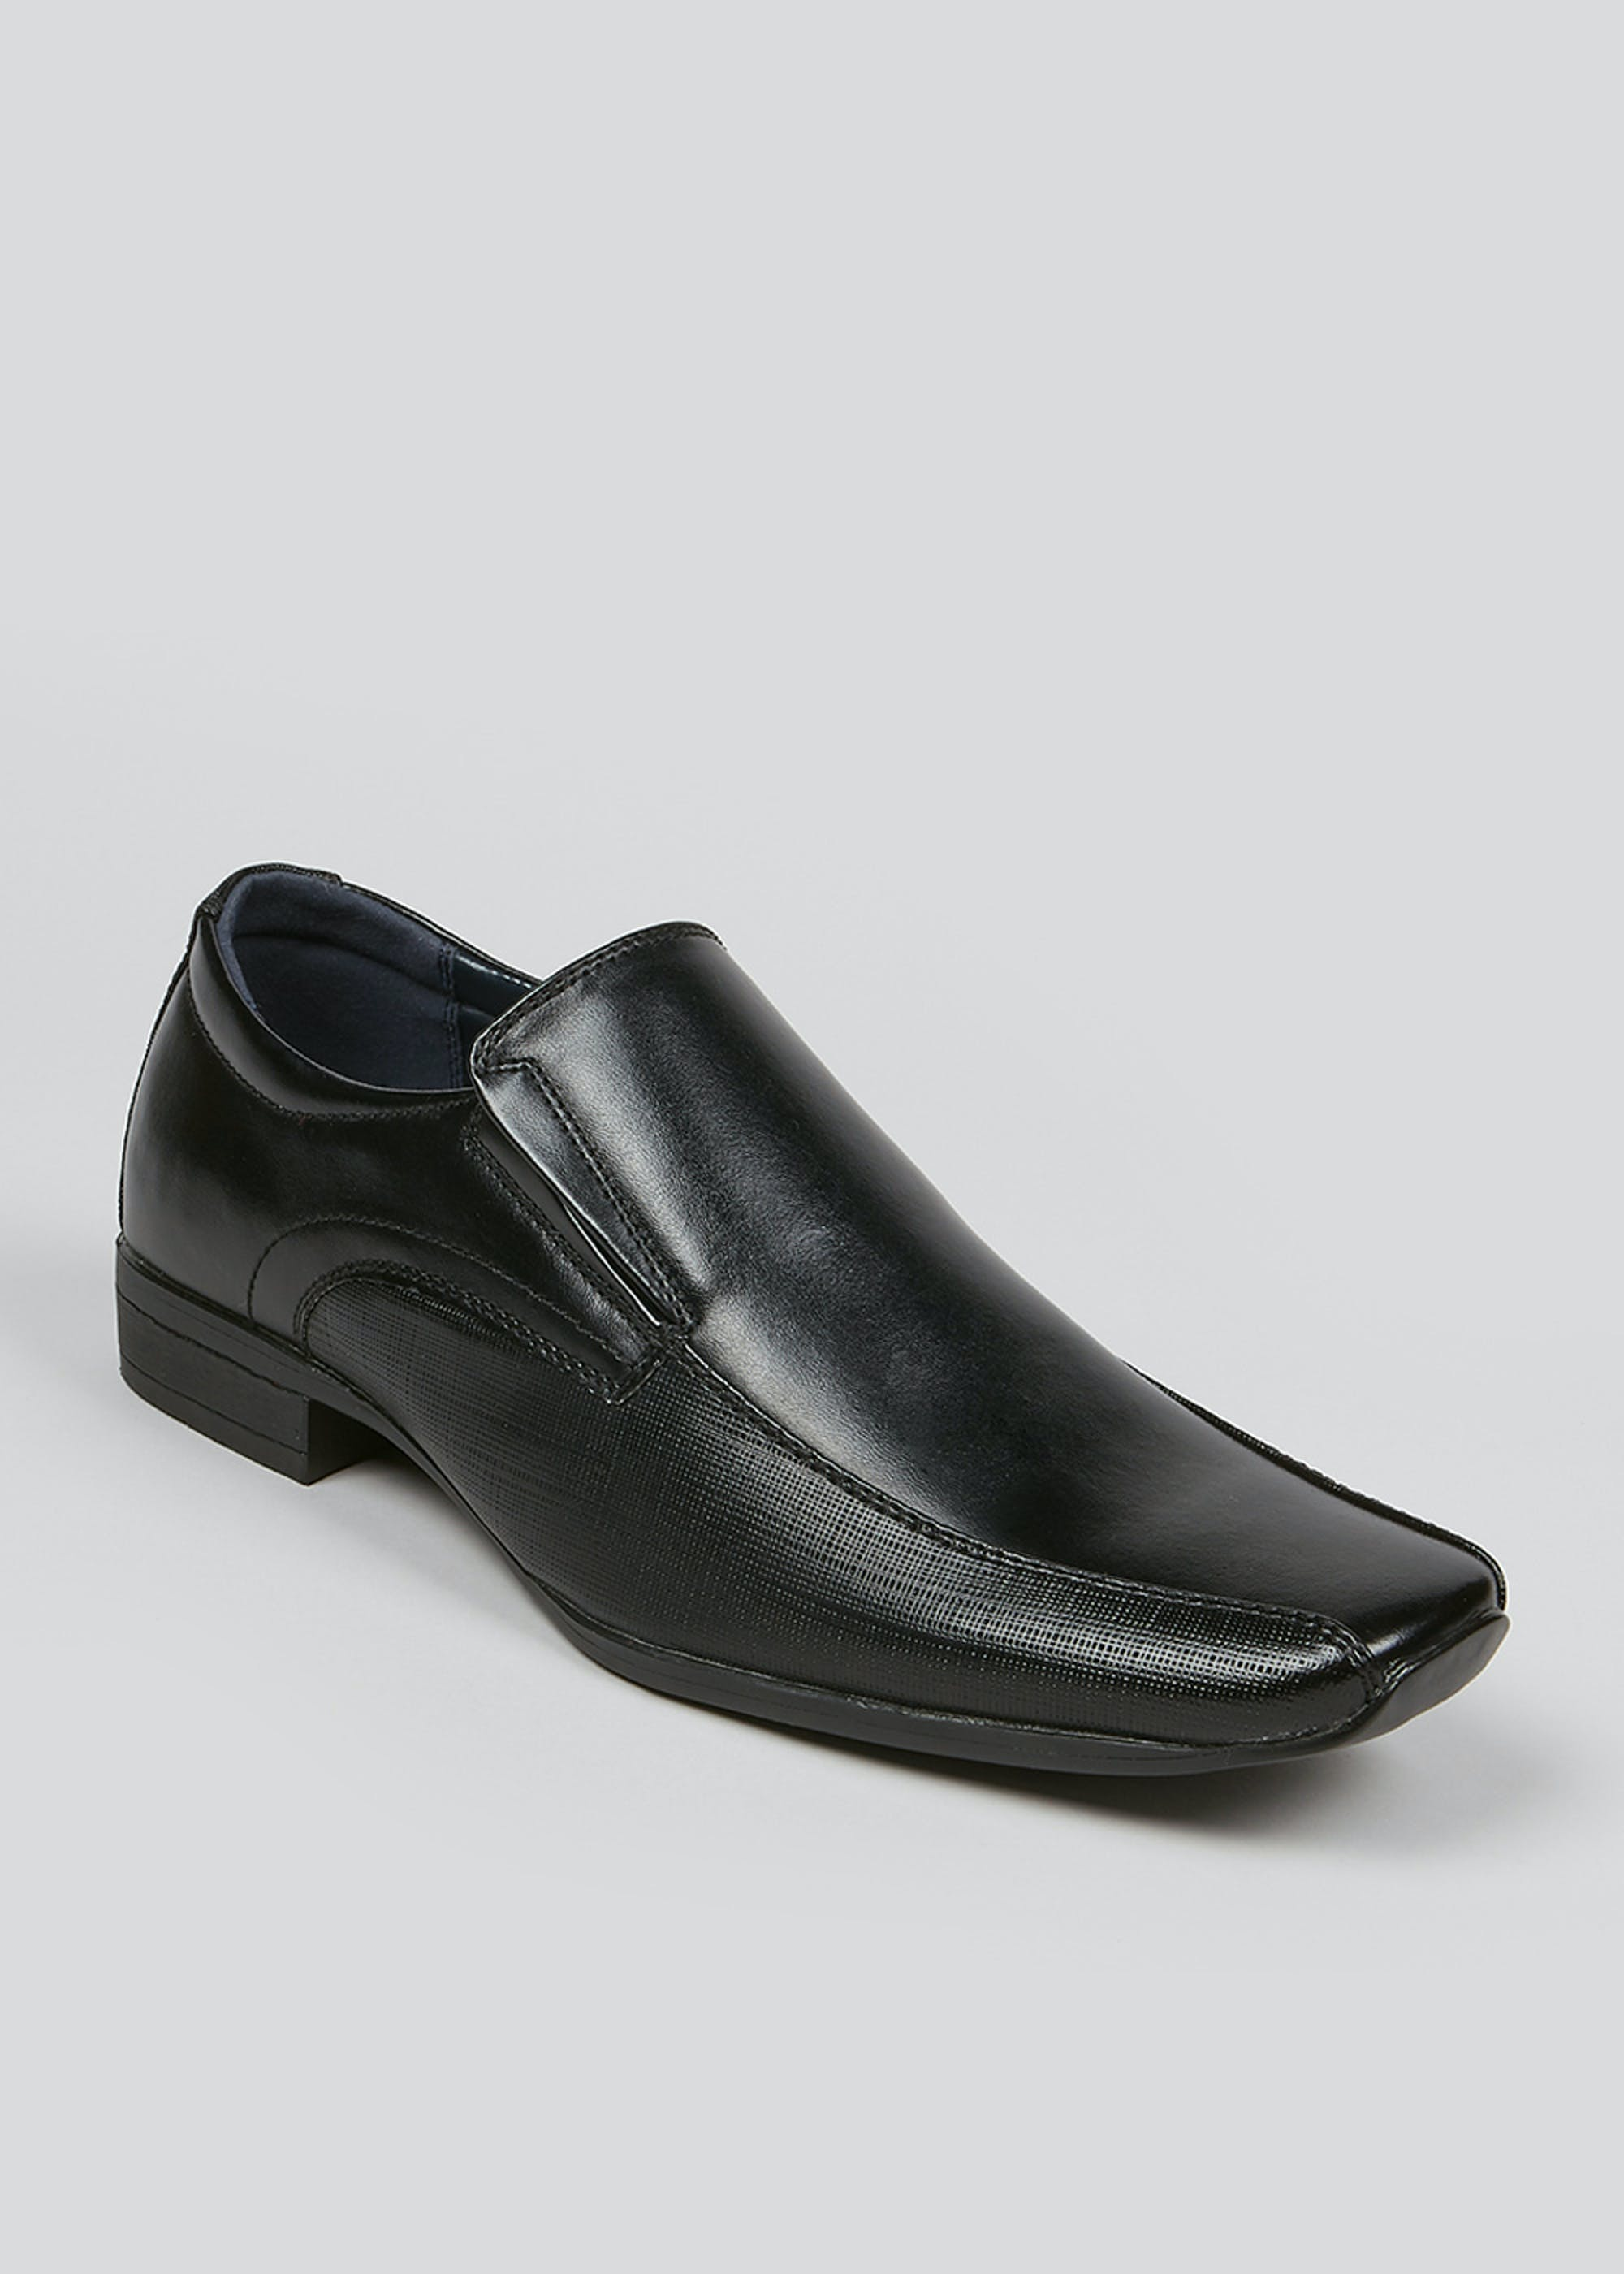 Black Tramline Slip On Shoes Black oAxSHw